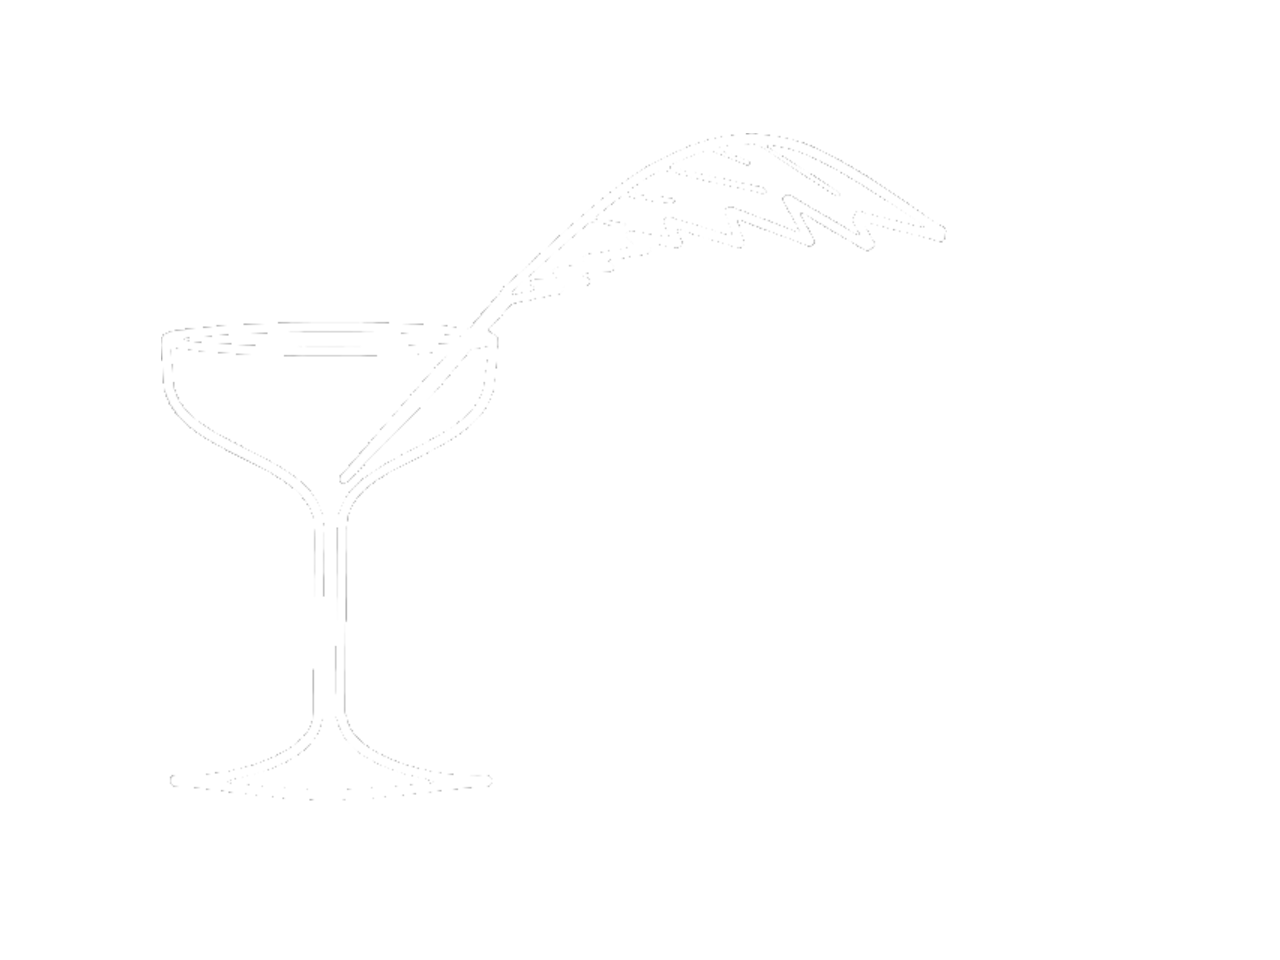 academy drinks logo